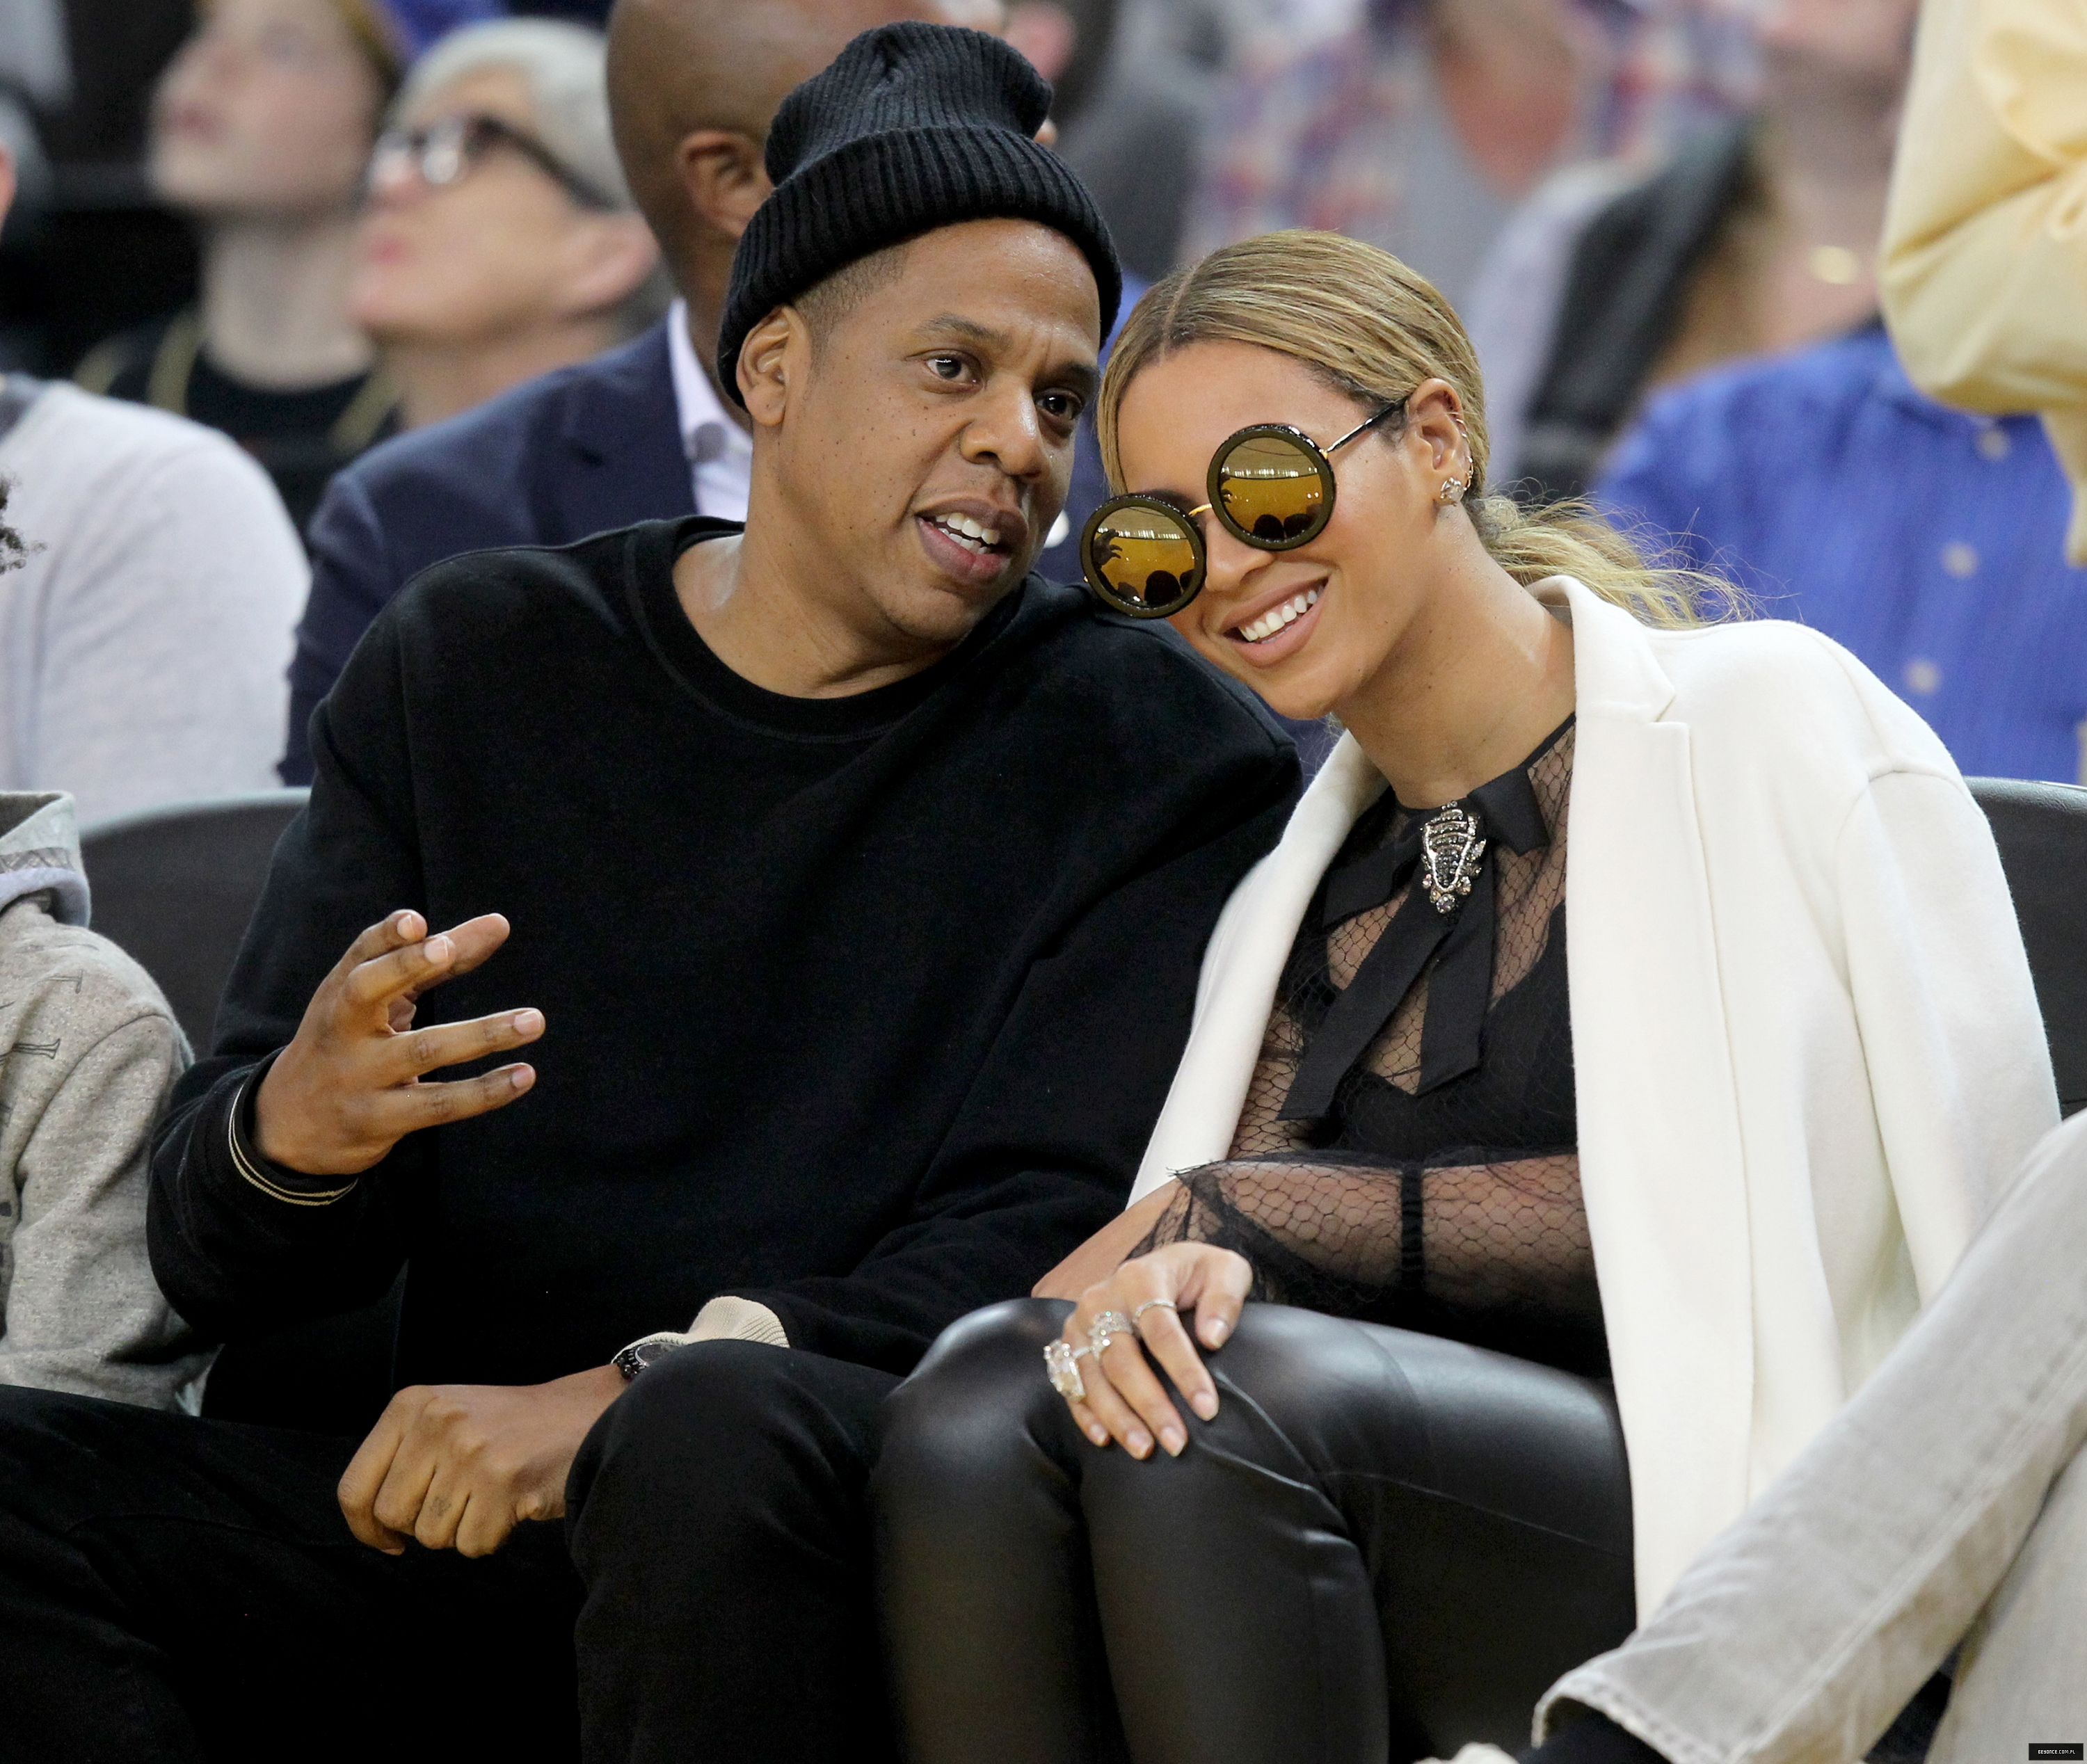 Beyoncé > Apariciones en público <Candids> [IV] SPORTS_BKN-THUNDER-WARRIORS_1_OX